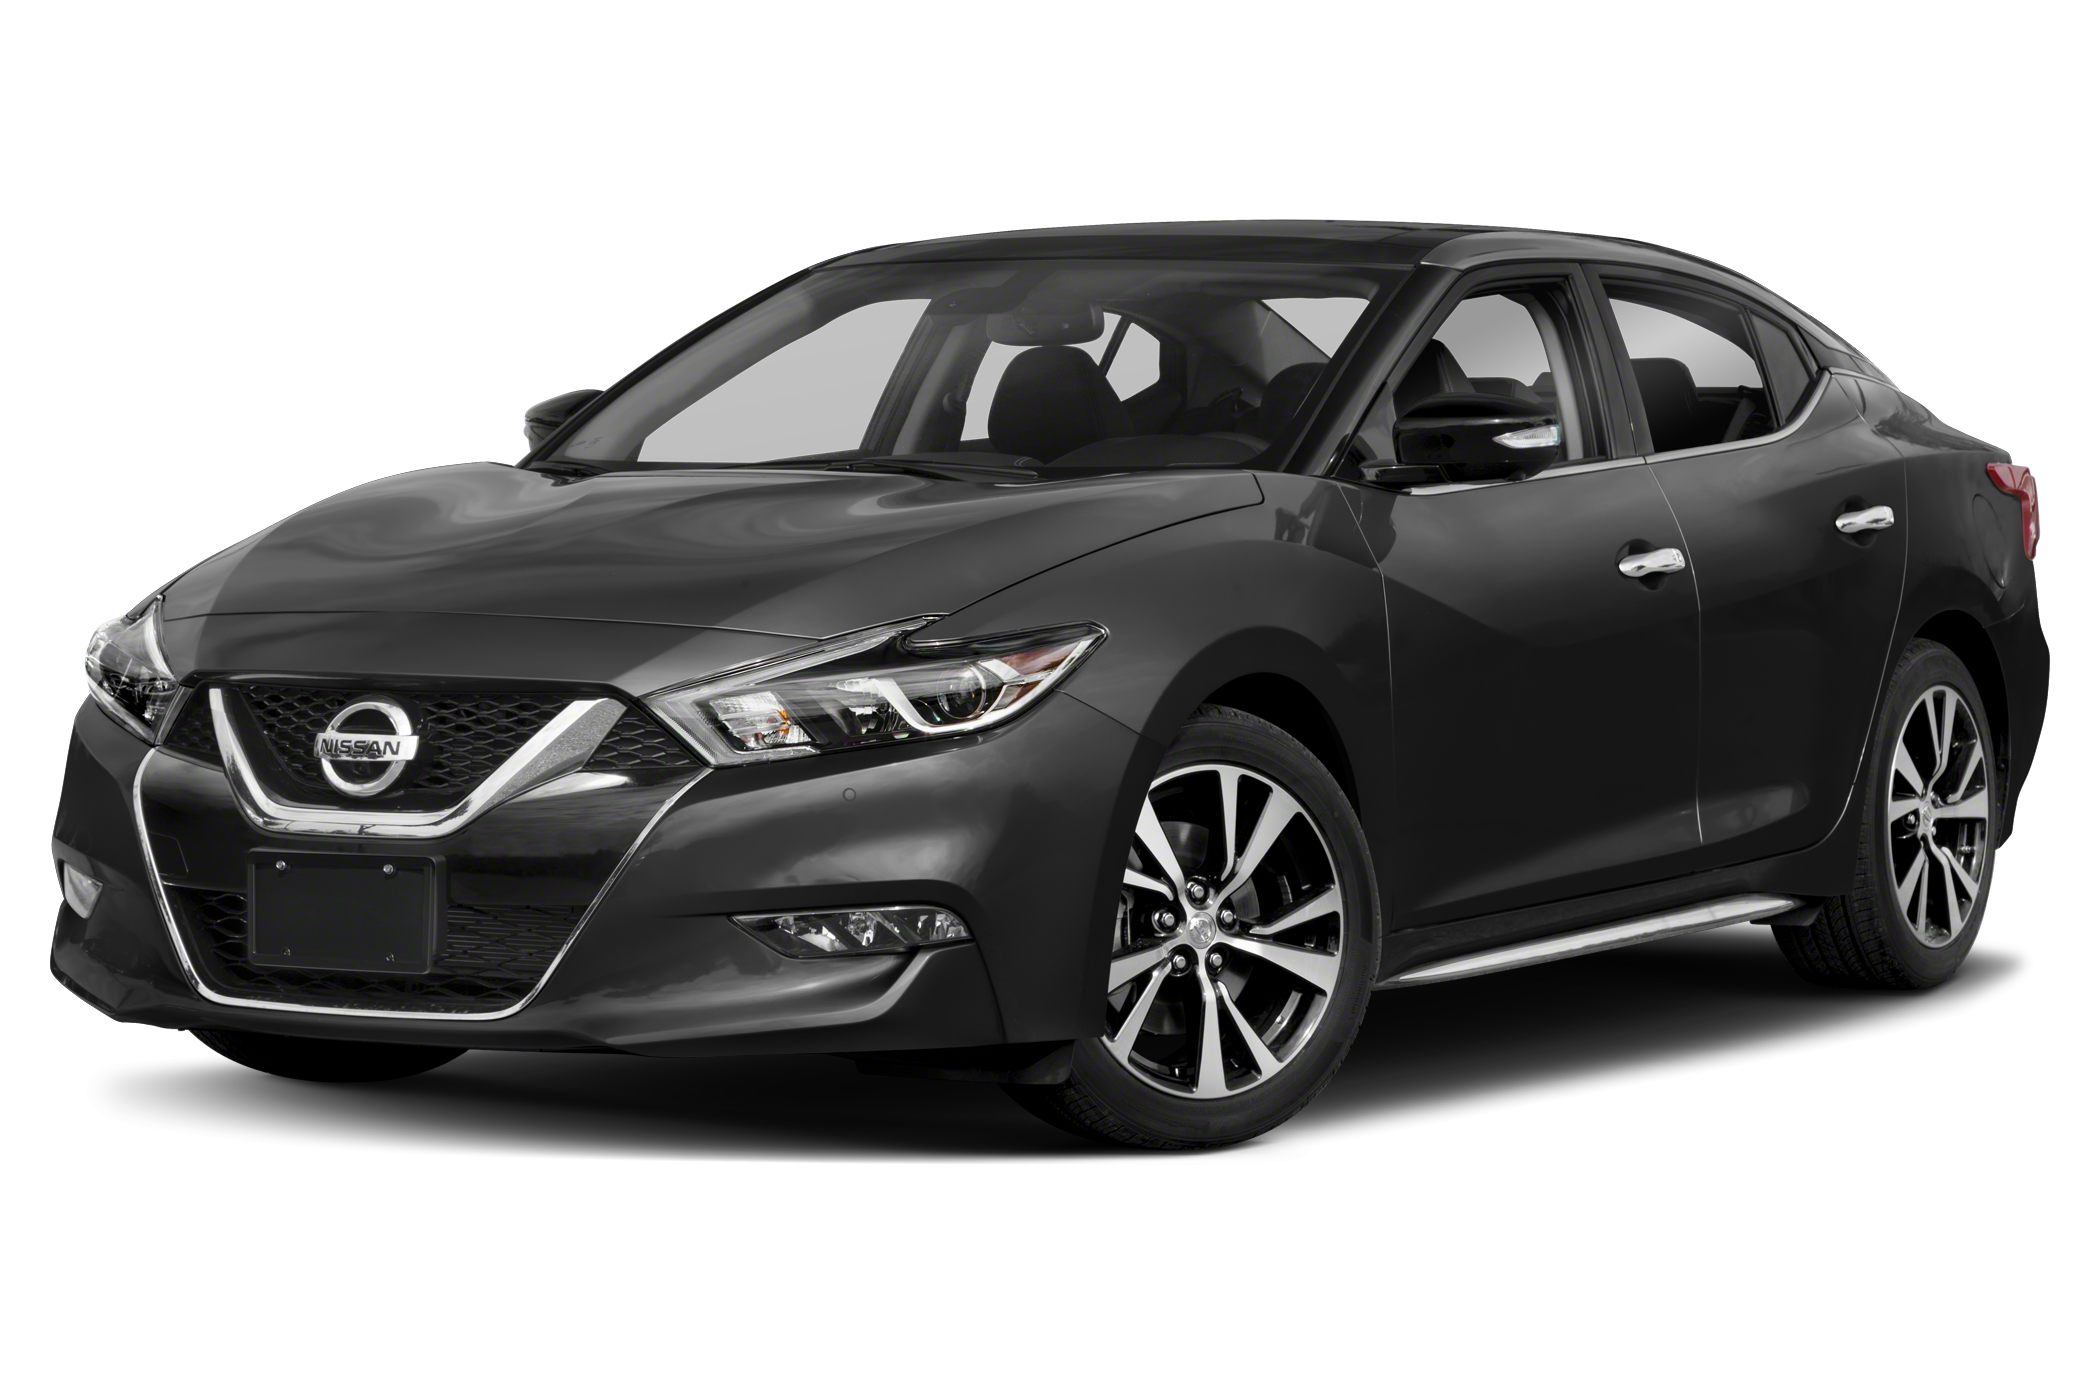 Used Cars for Sale Near Me Nissan Elegant Cars for Sale at Crown Nissan Of Greenville In Greenville Sc